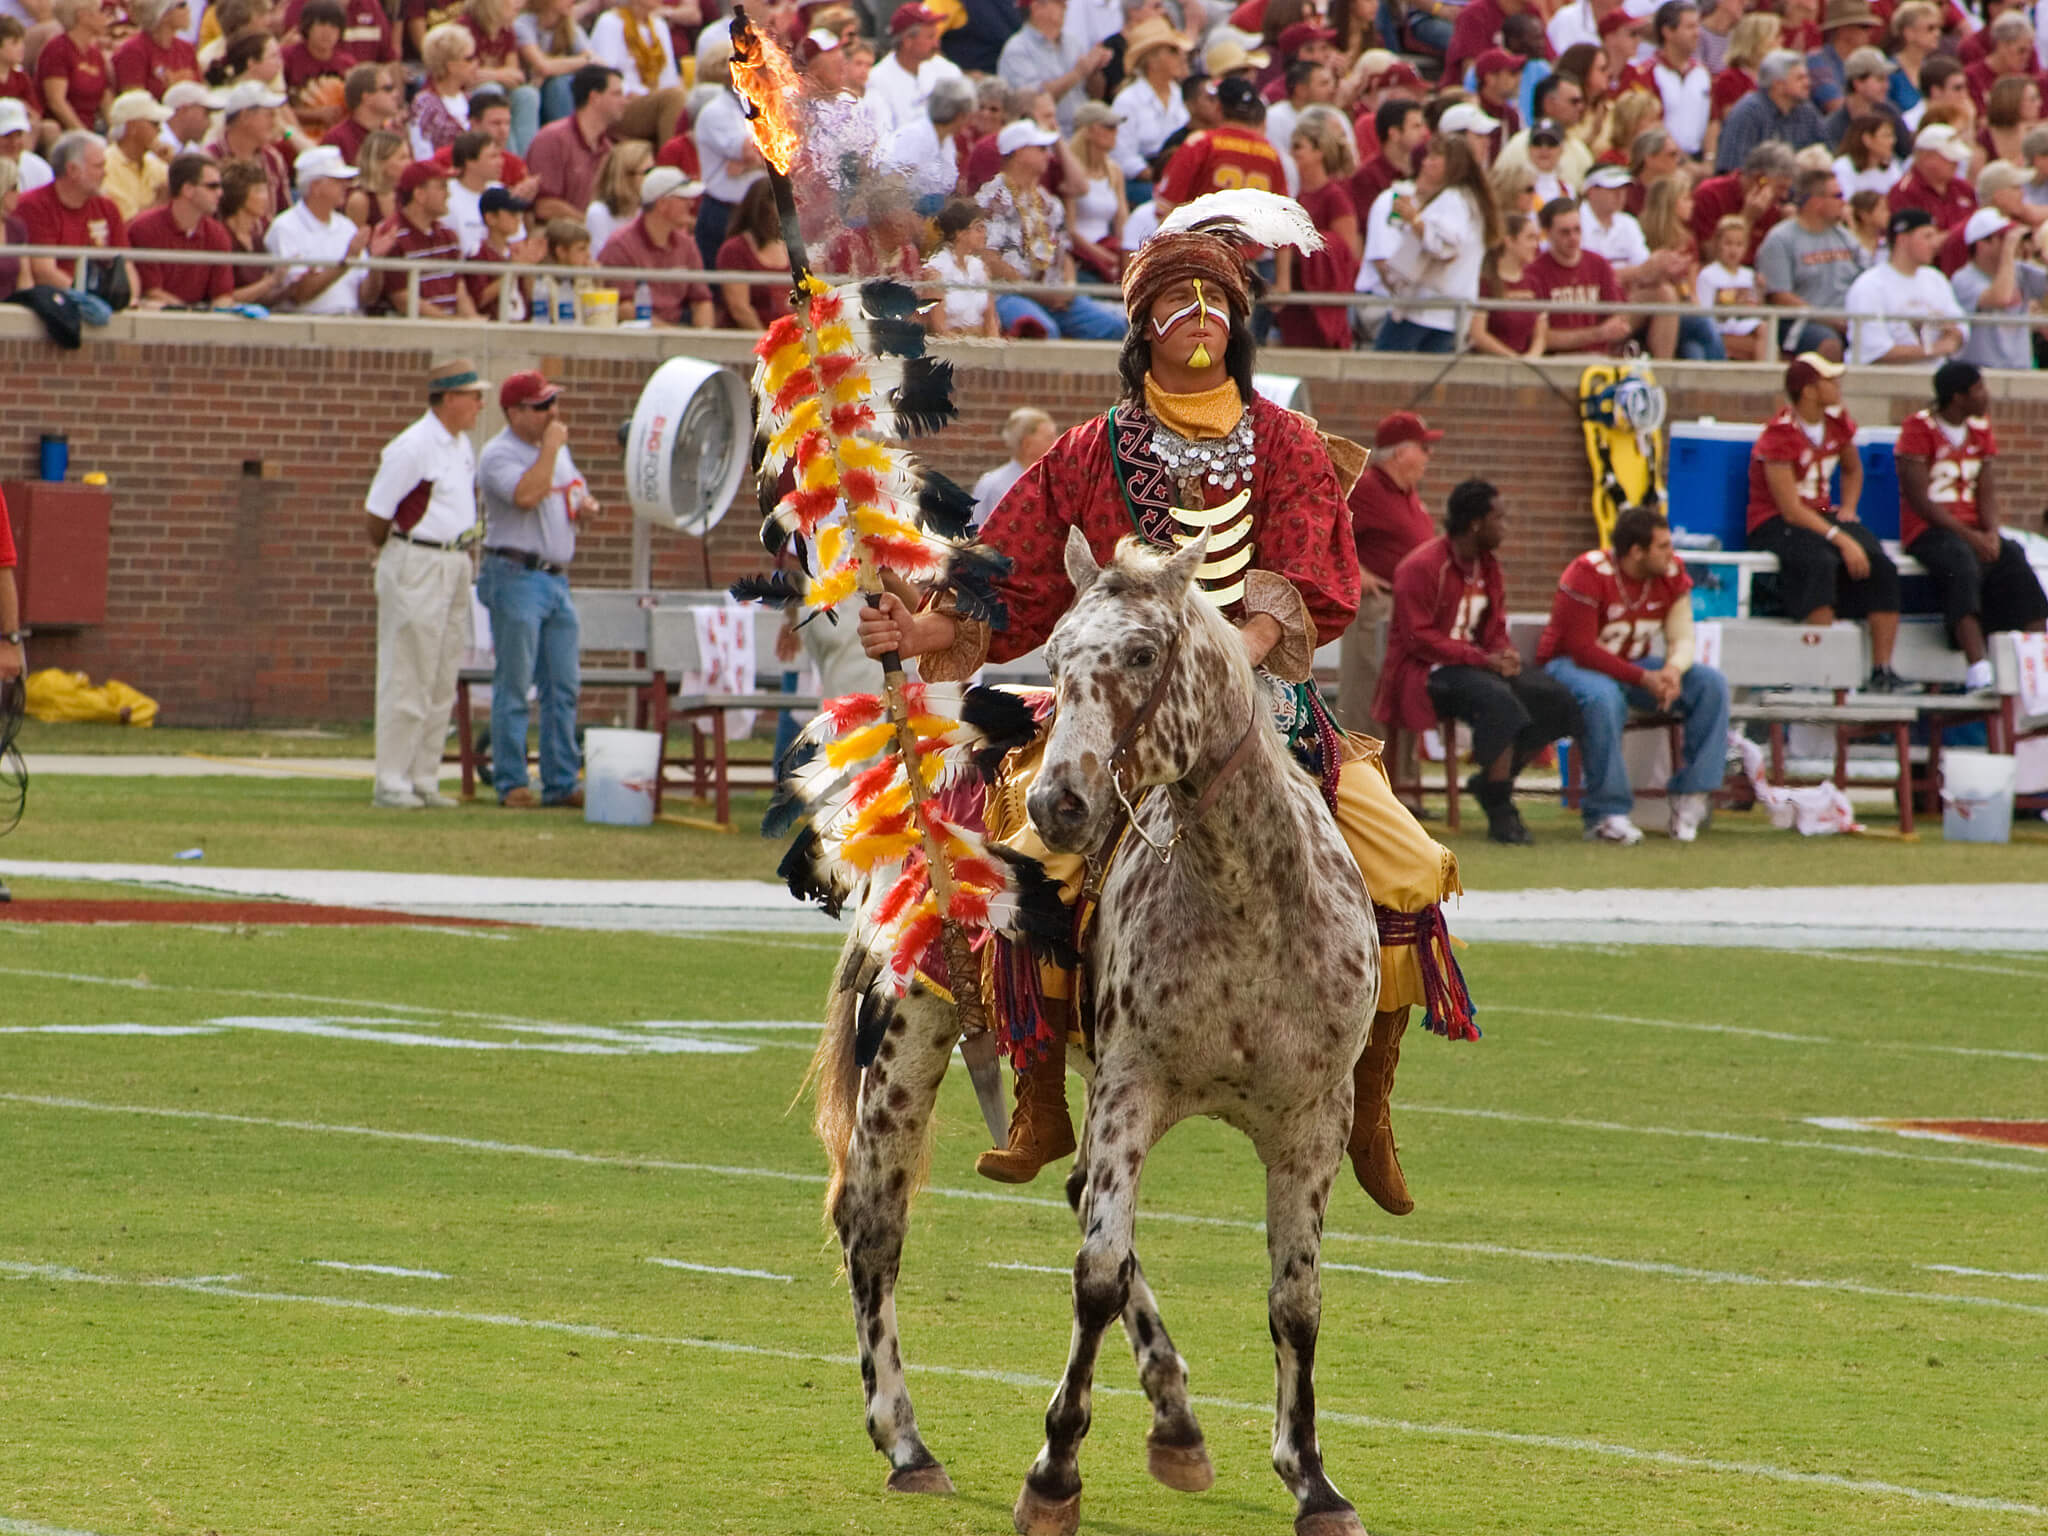 Chief Osceola And The Planting Of The Spear tradition